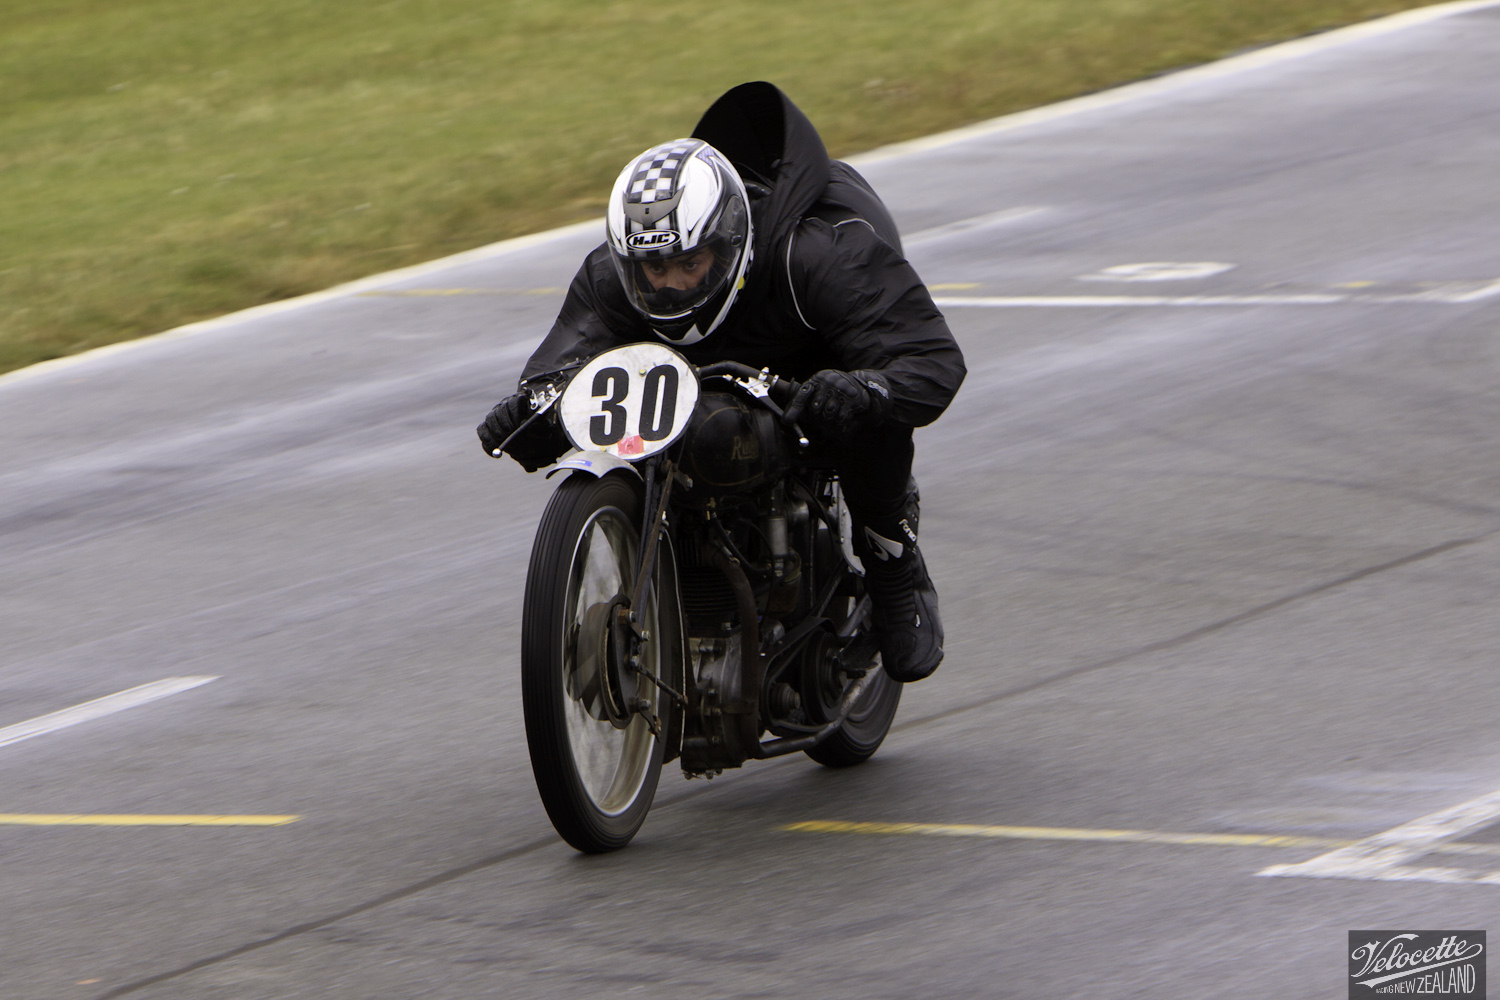 Burt Munro Challenge, Classic Pre '63 with Girder Forks, Michael Wilson, Rider 30, Rudge Special 350, Teretonga Circuit races